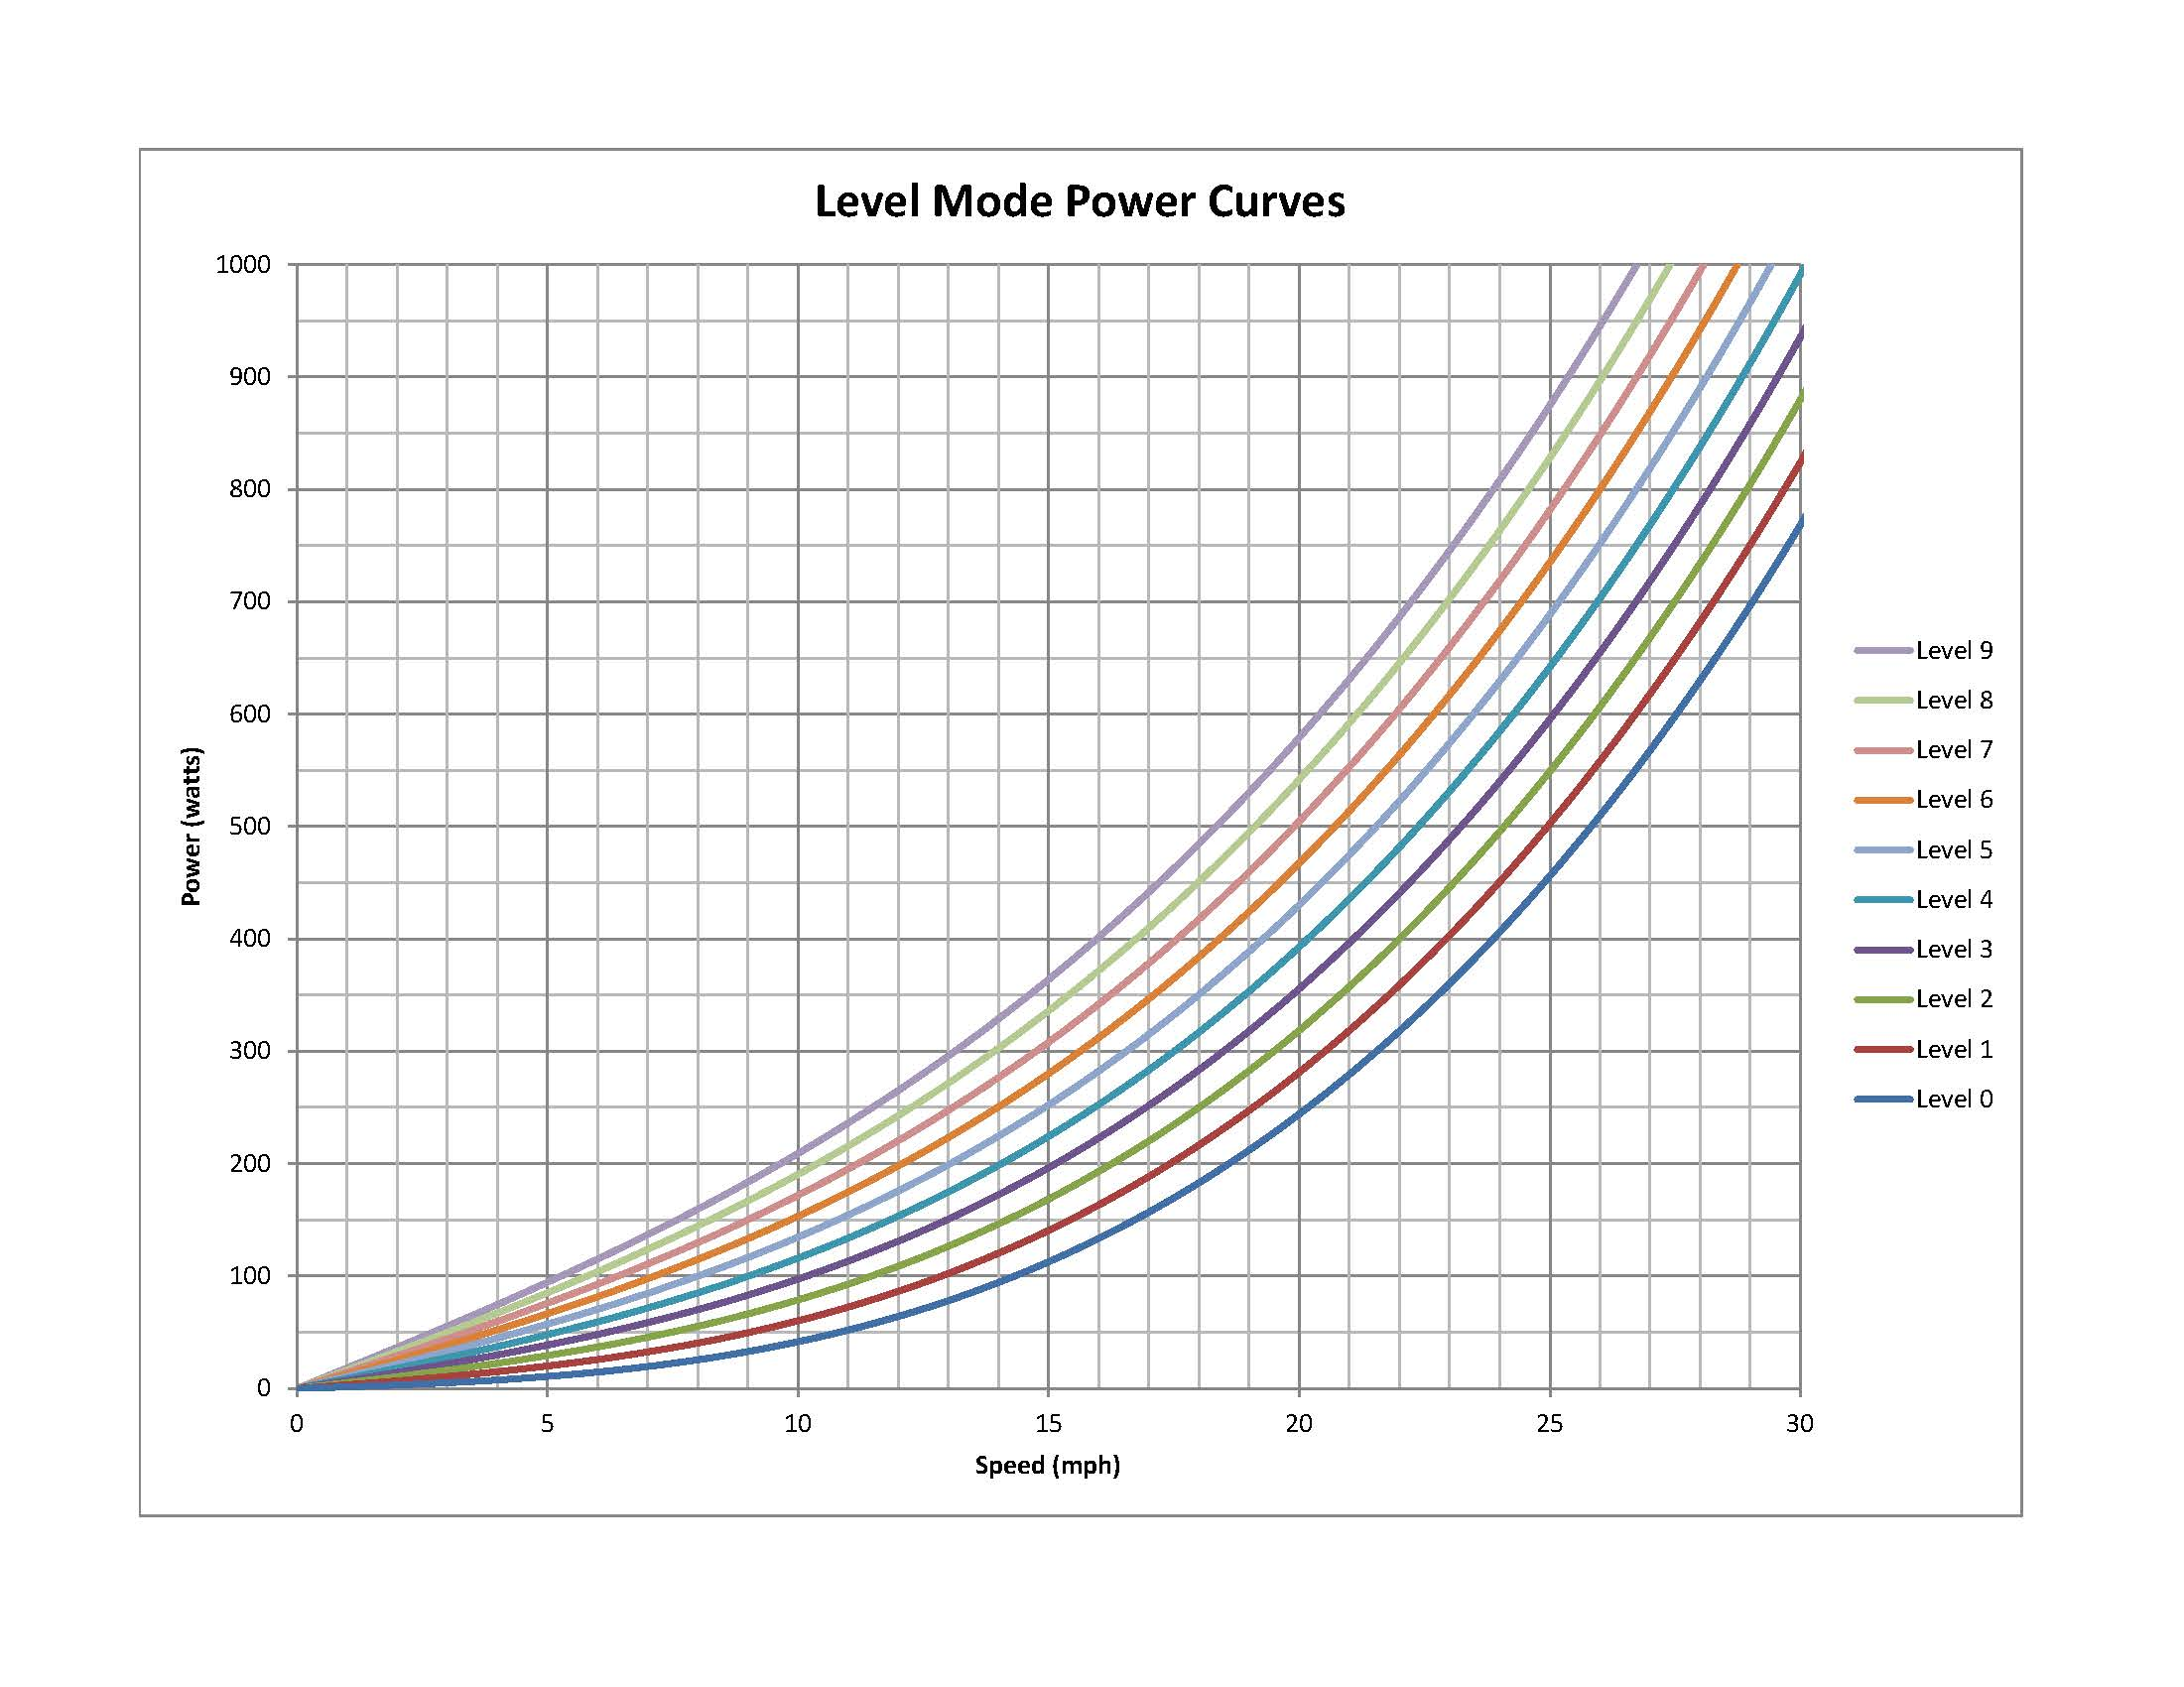 Level Mode Power Curves Image.jpg